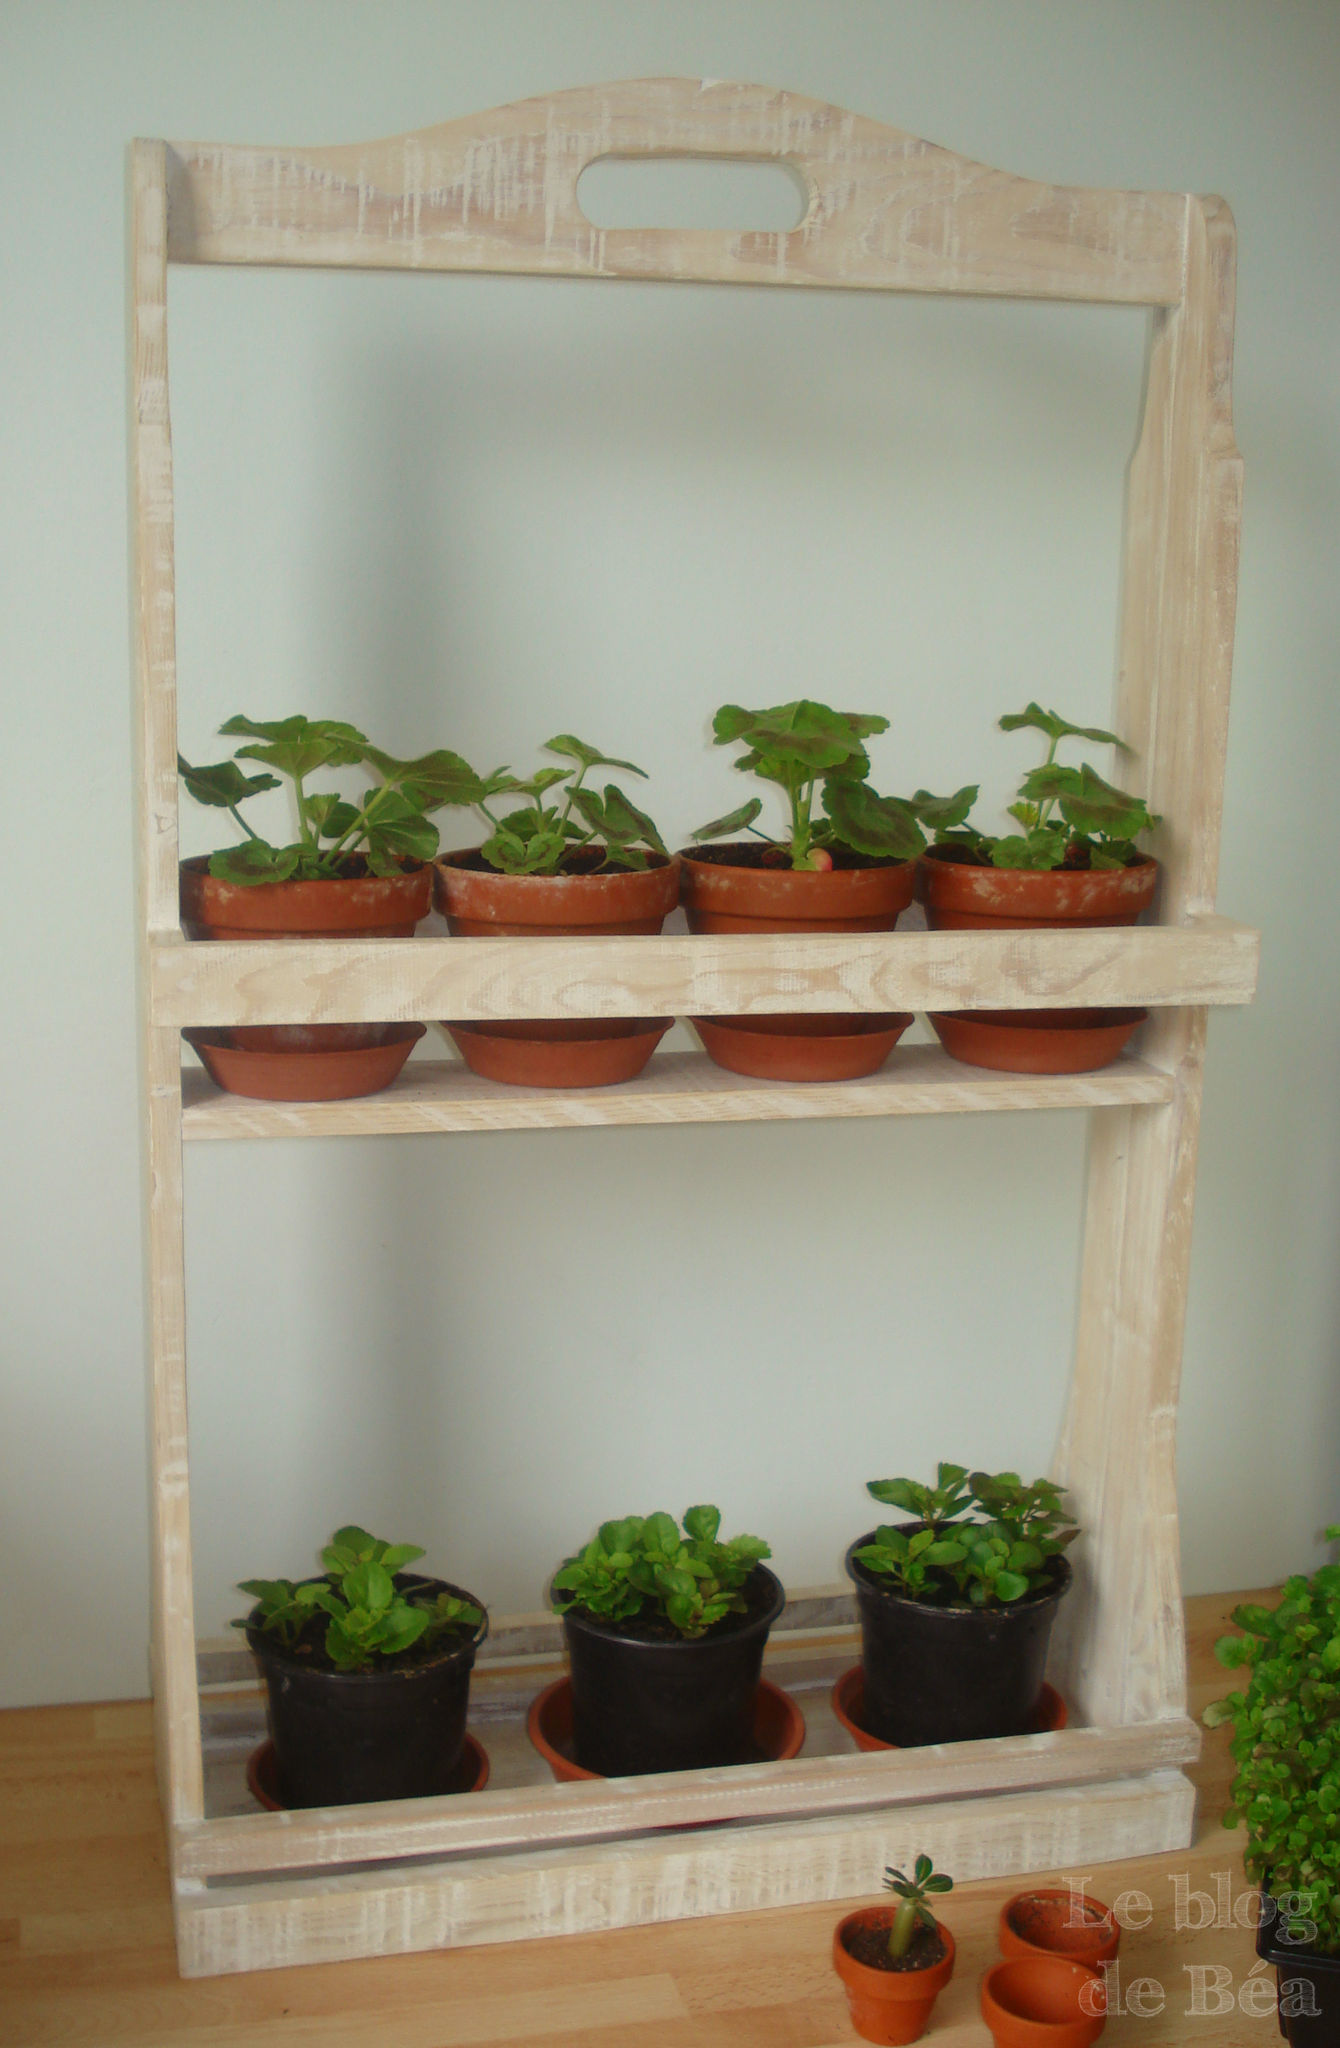 Diy etag re pour plantes le blog de b a for Idee deco etagere cuisine